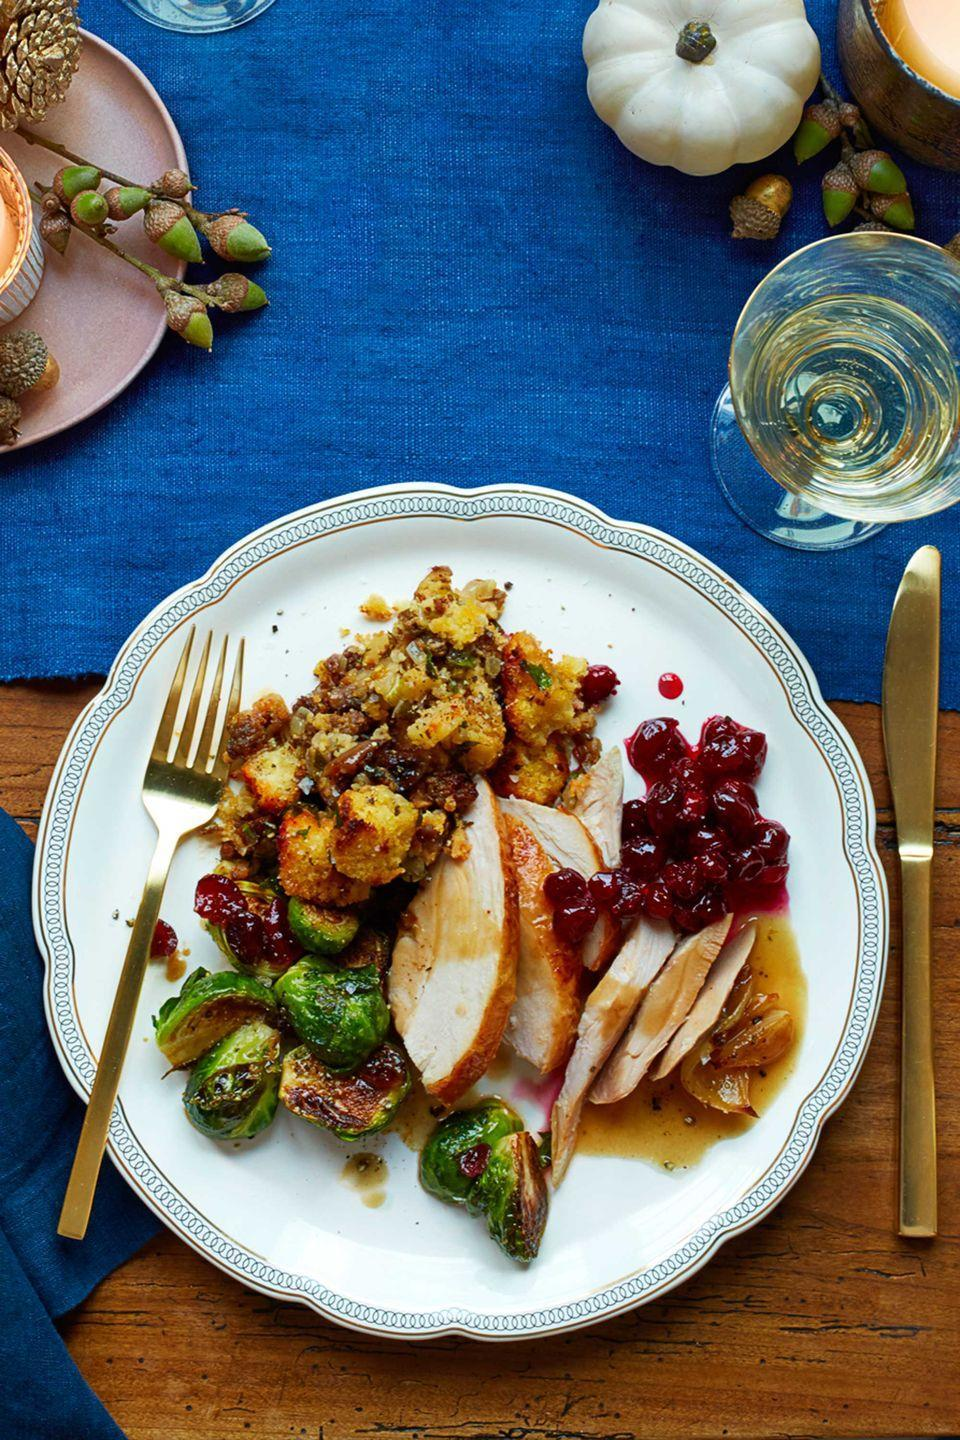 """<p>Add heaps of flavor to your turkey with this simple and elegant gravy you can whip up in no time.<br></p><p><a href=""""https://www.womansday.com/food-recipes/food-drinks/recipes/a12558/roasted-turkey-gravy-recipe-wdy1113/"""" rel=""""nofollow noopener"""" target=""""_blank"""" data-ylk=""""slk:Get the Roasted Turkey Gravy recipe."""" class=""""link rapid-noclick-resp""""><em><strong>Get the Roasted Turkey Gravy recipe.</strong></em></a></p>"""